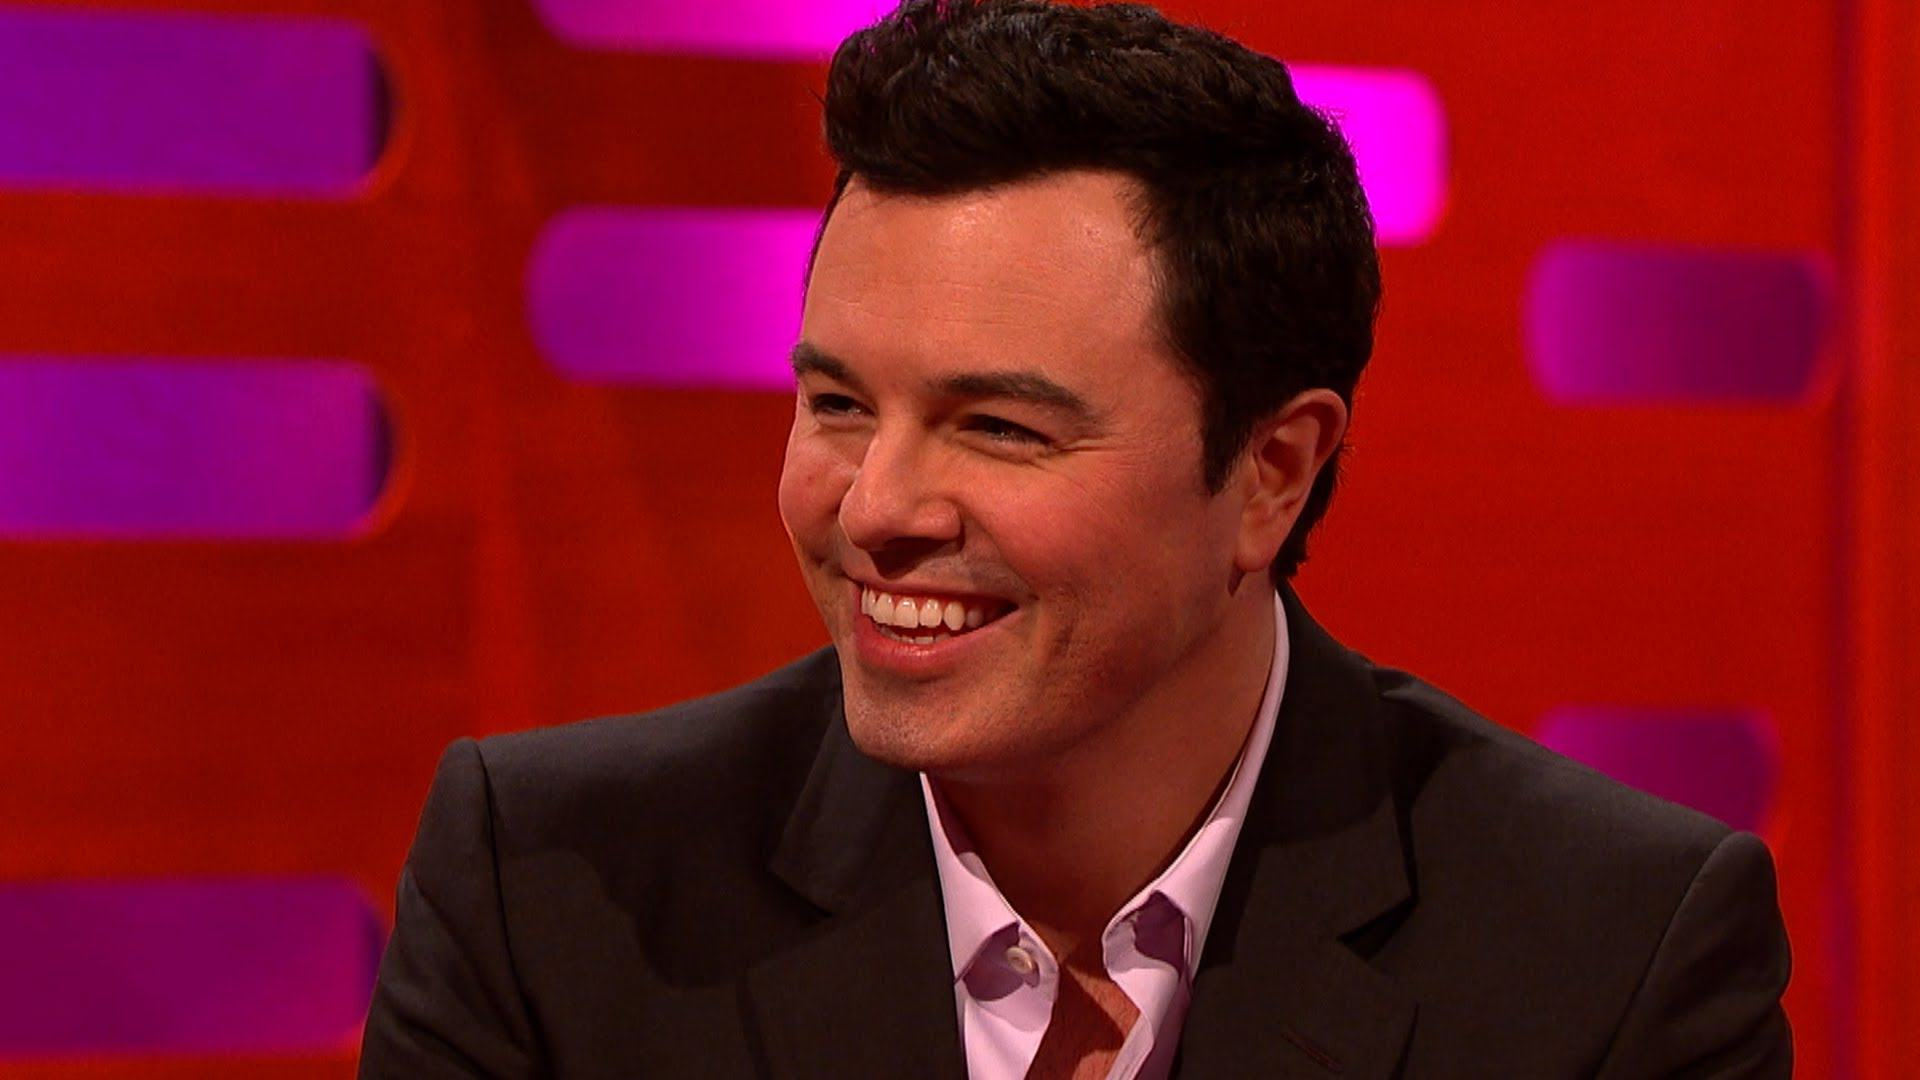 seth mcfarlane performs his fami Family Guy And American Dad Officially Move To ITV